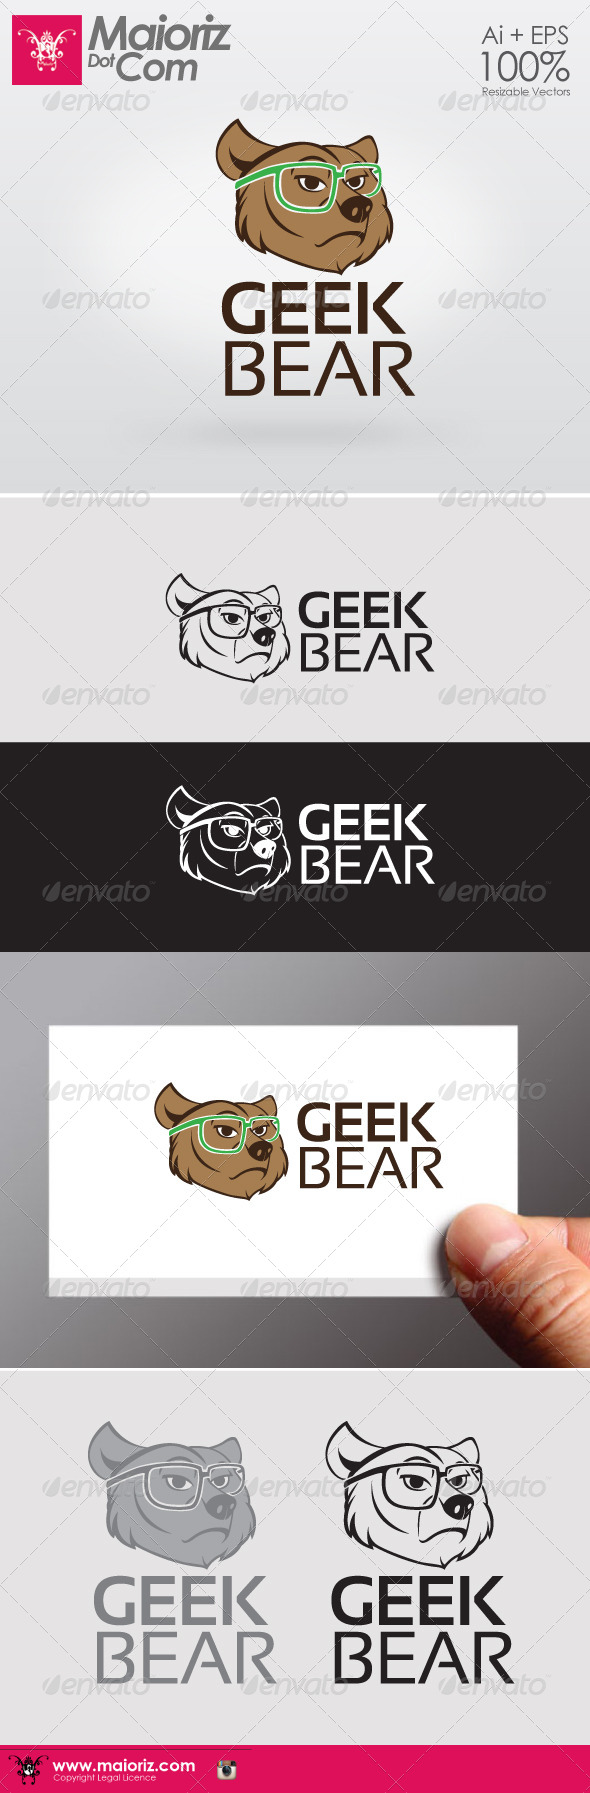 Geek Bear Logo - Animals Logo Templates